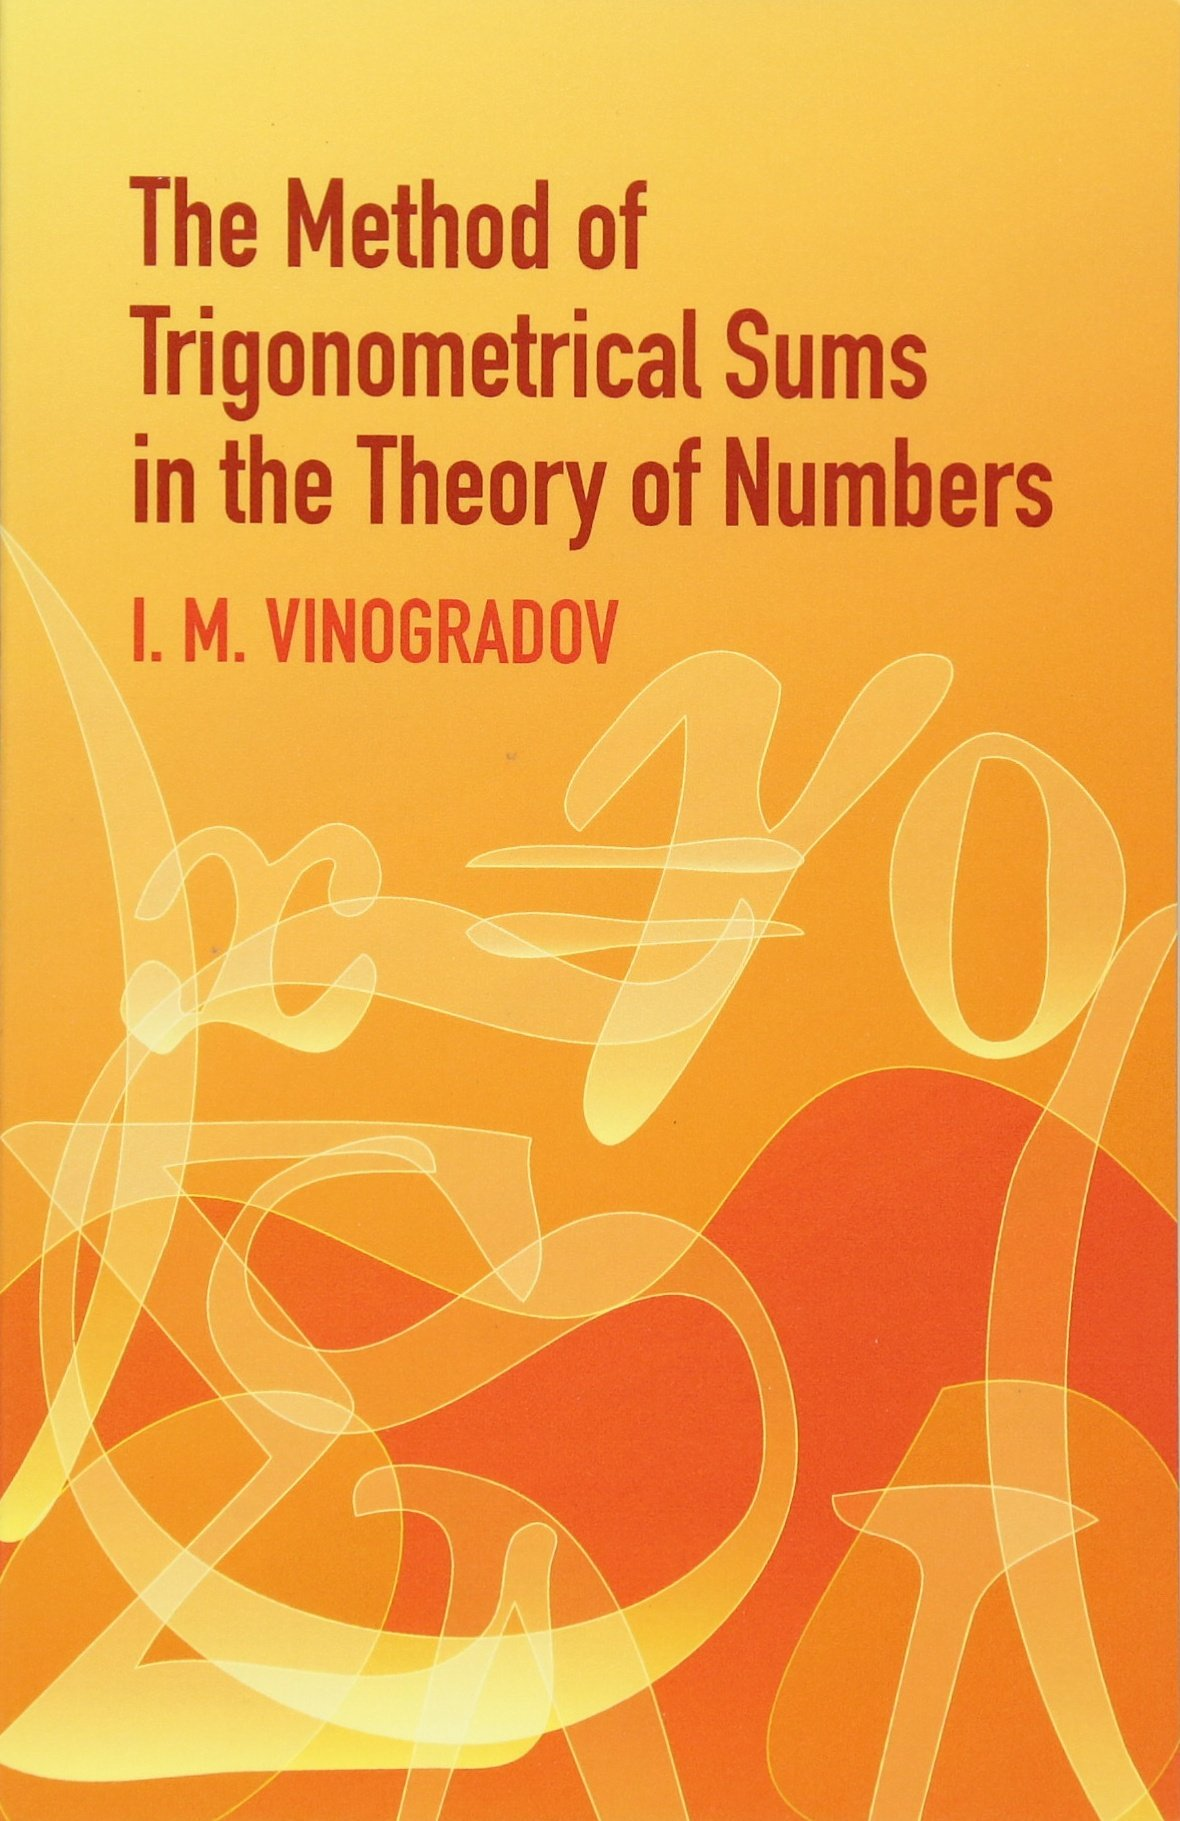 Read Online The Method of Trigonometrical Sums in the Theory of Numbers (Dover Books on Mathematics) PDF